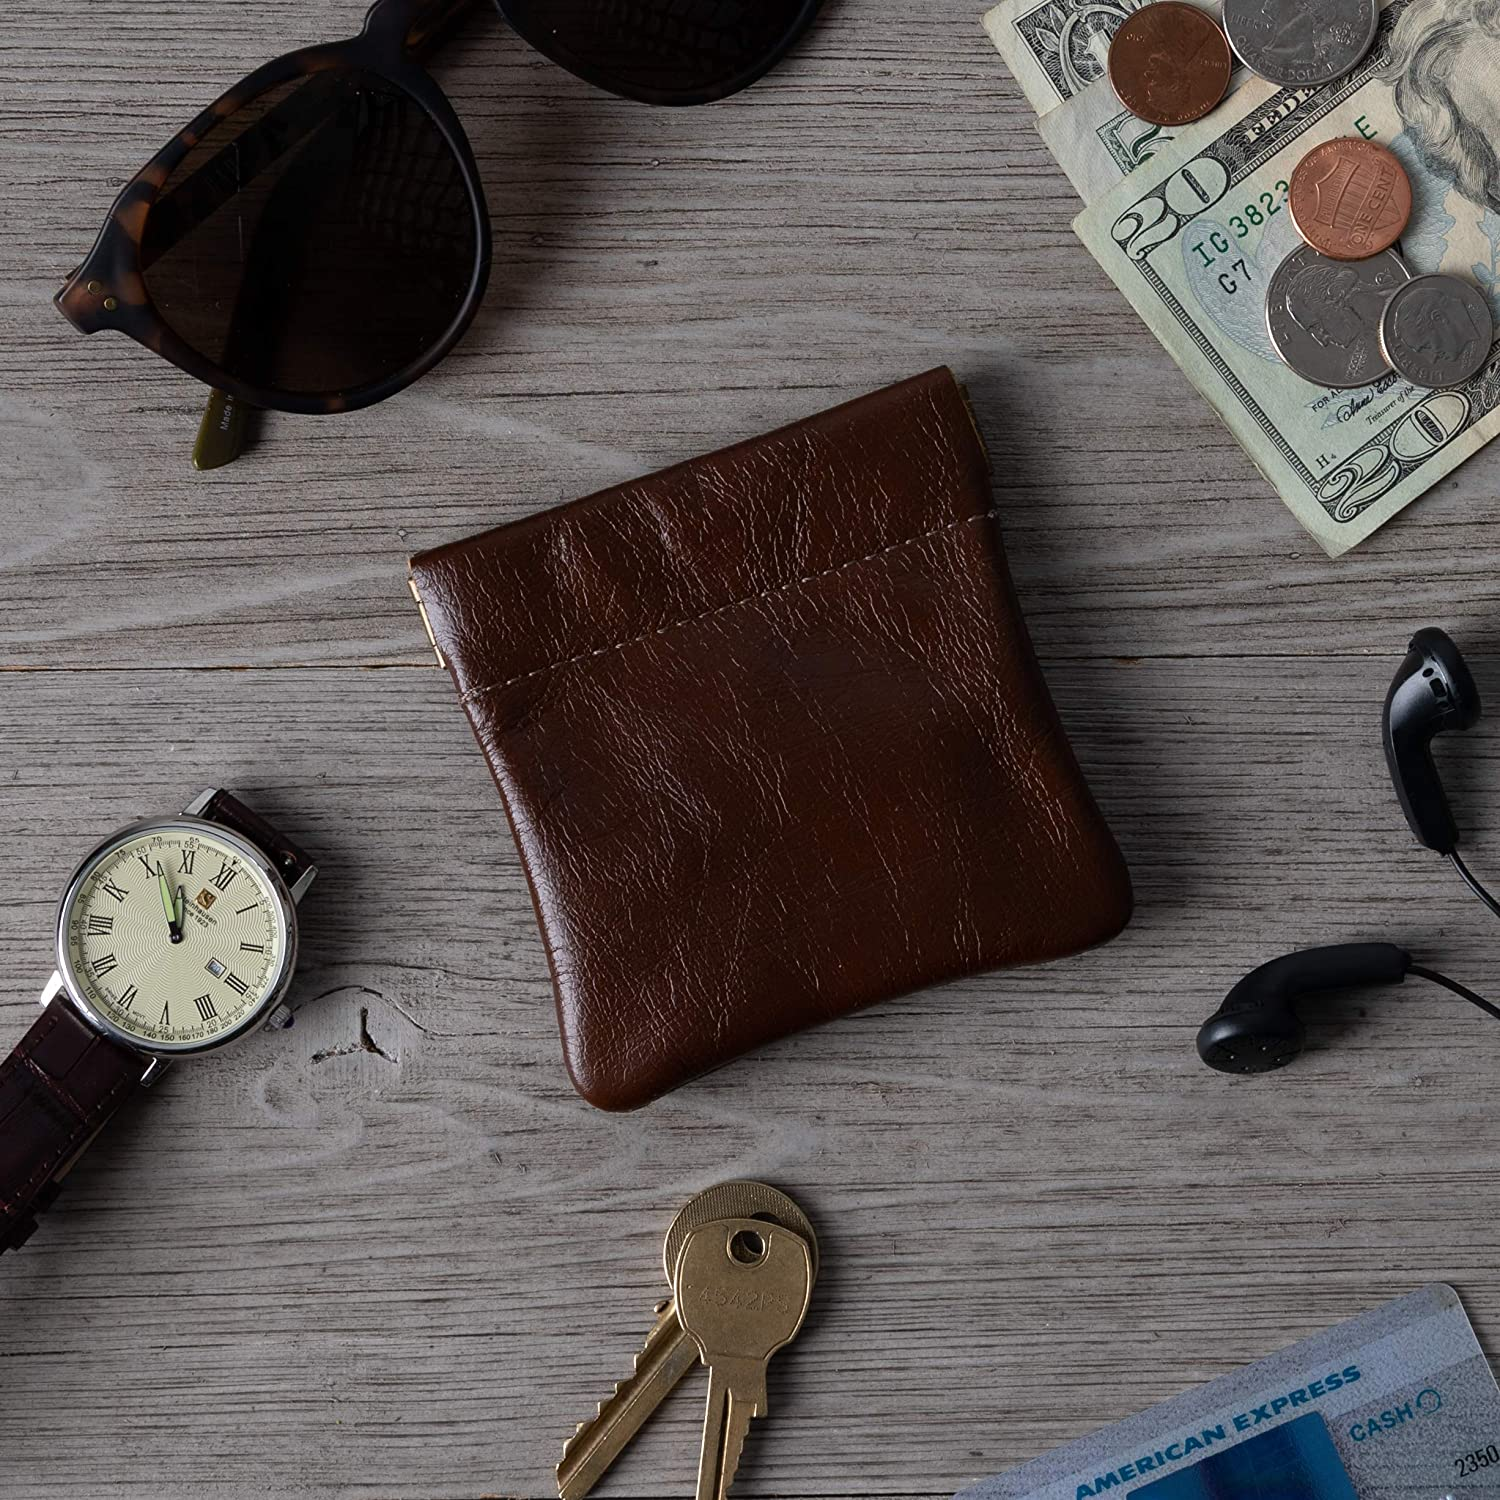 for Men//Woman Pouch Size 3.5 x 3.5 Change Holder Genuine Leather Squeeze Coin Purse Made in U.S.A